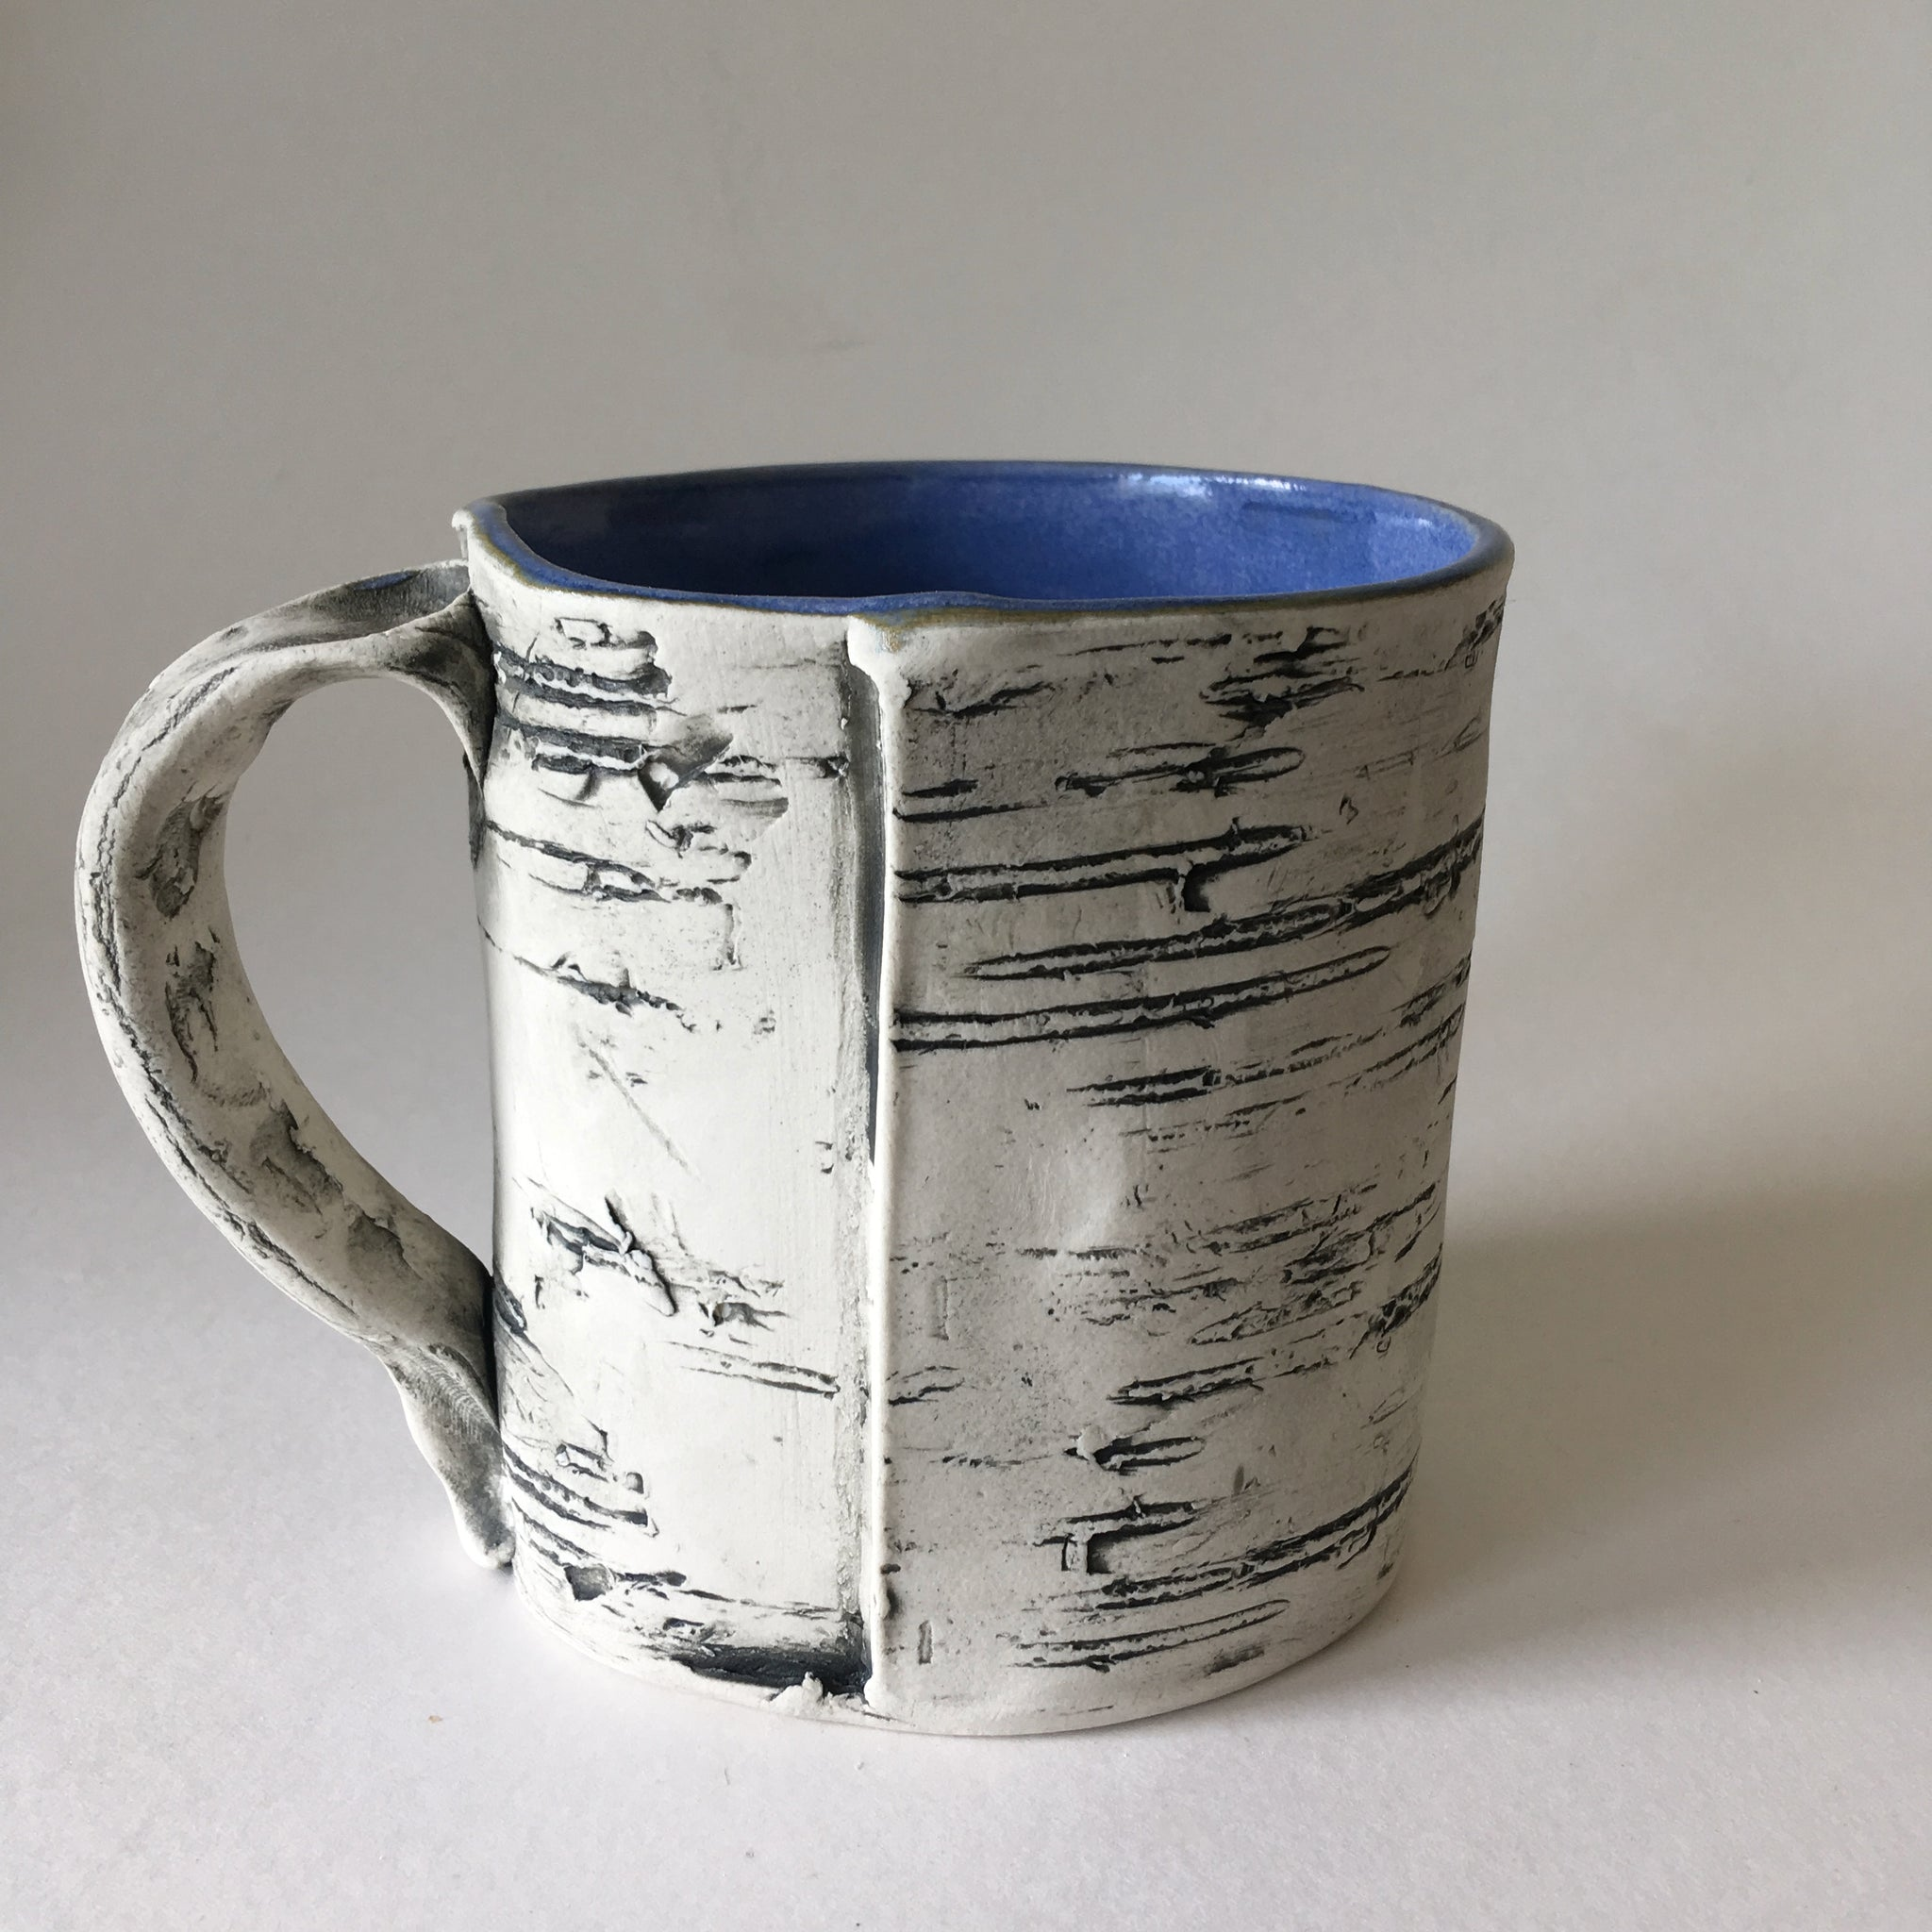 12oz Blue Faux Bois Birch Mug